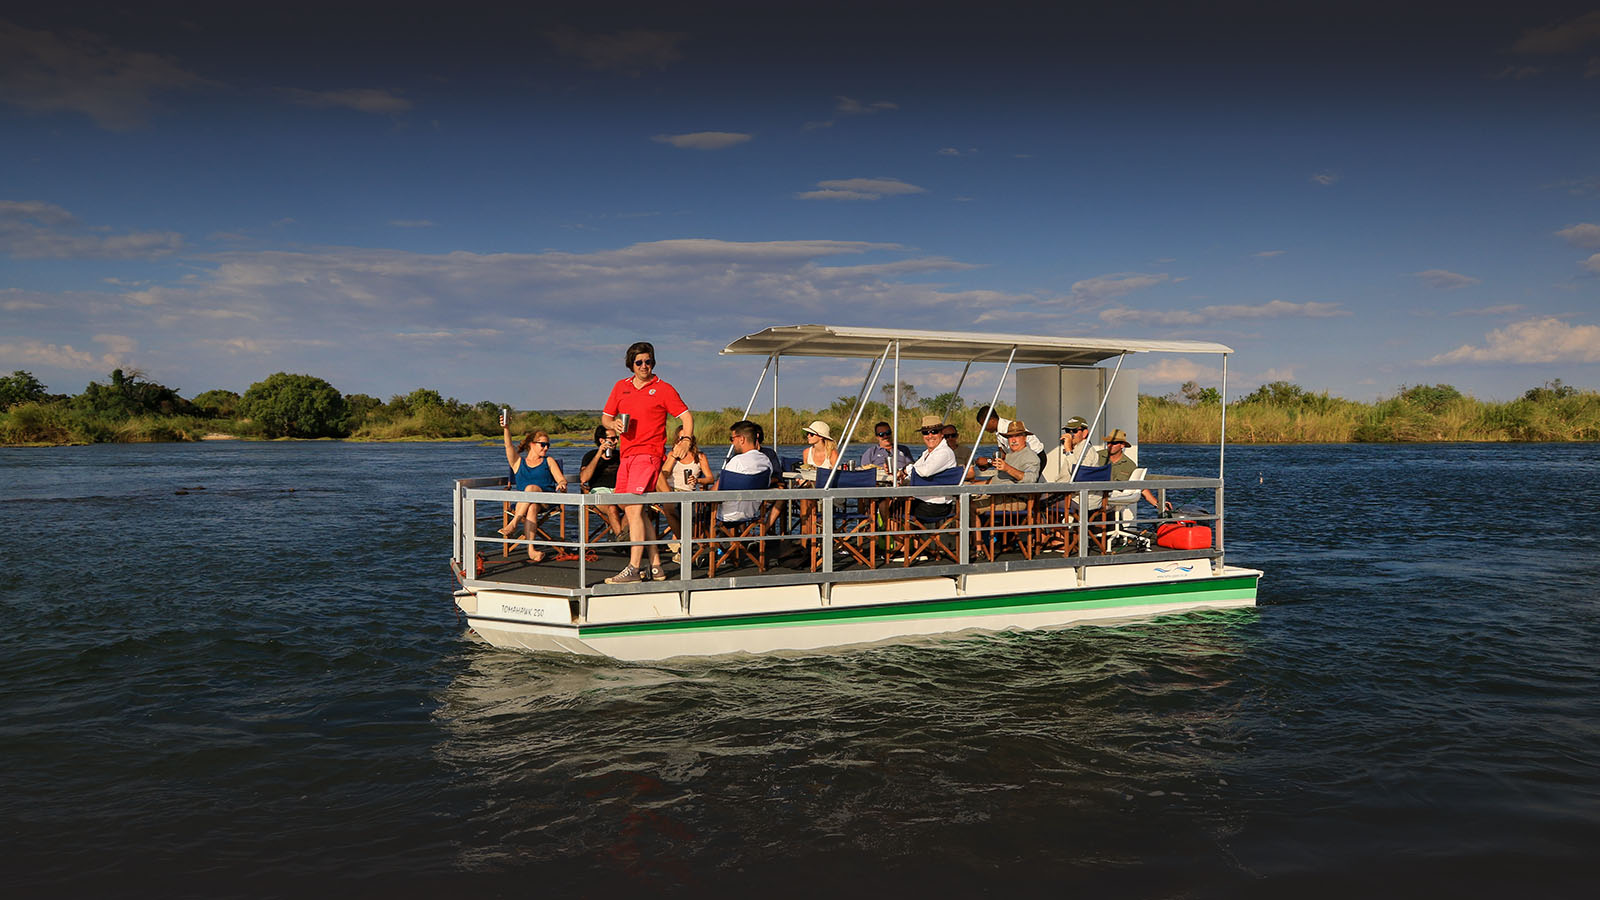 zambezi sands river camp victoria-falls-zimbabwe-accommodation-imvelo-safari-lodges-zambezi-national-park-sunset-cruise-drinks